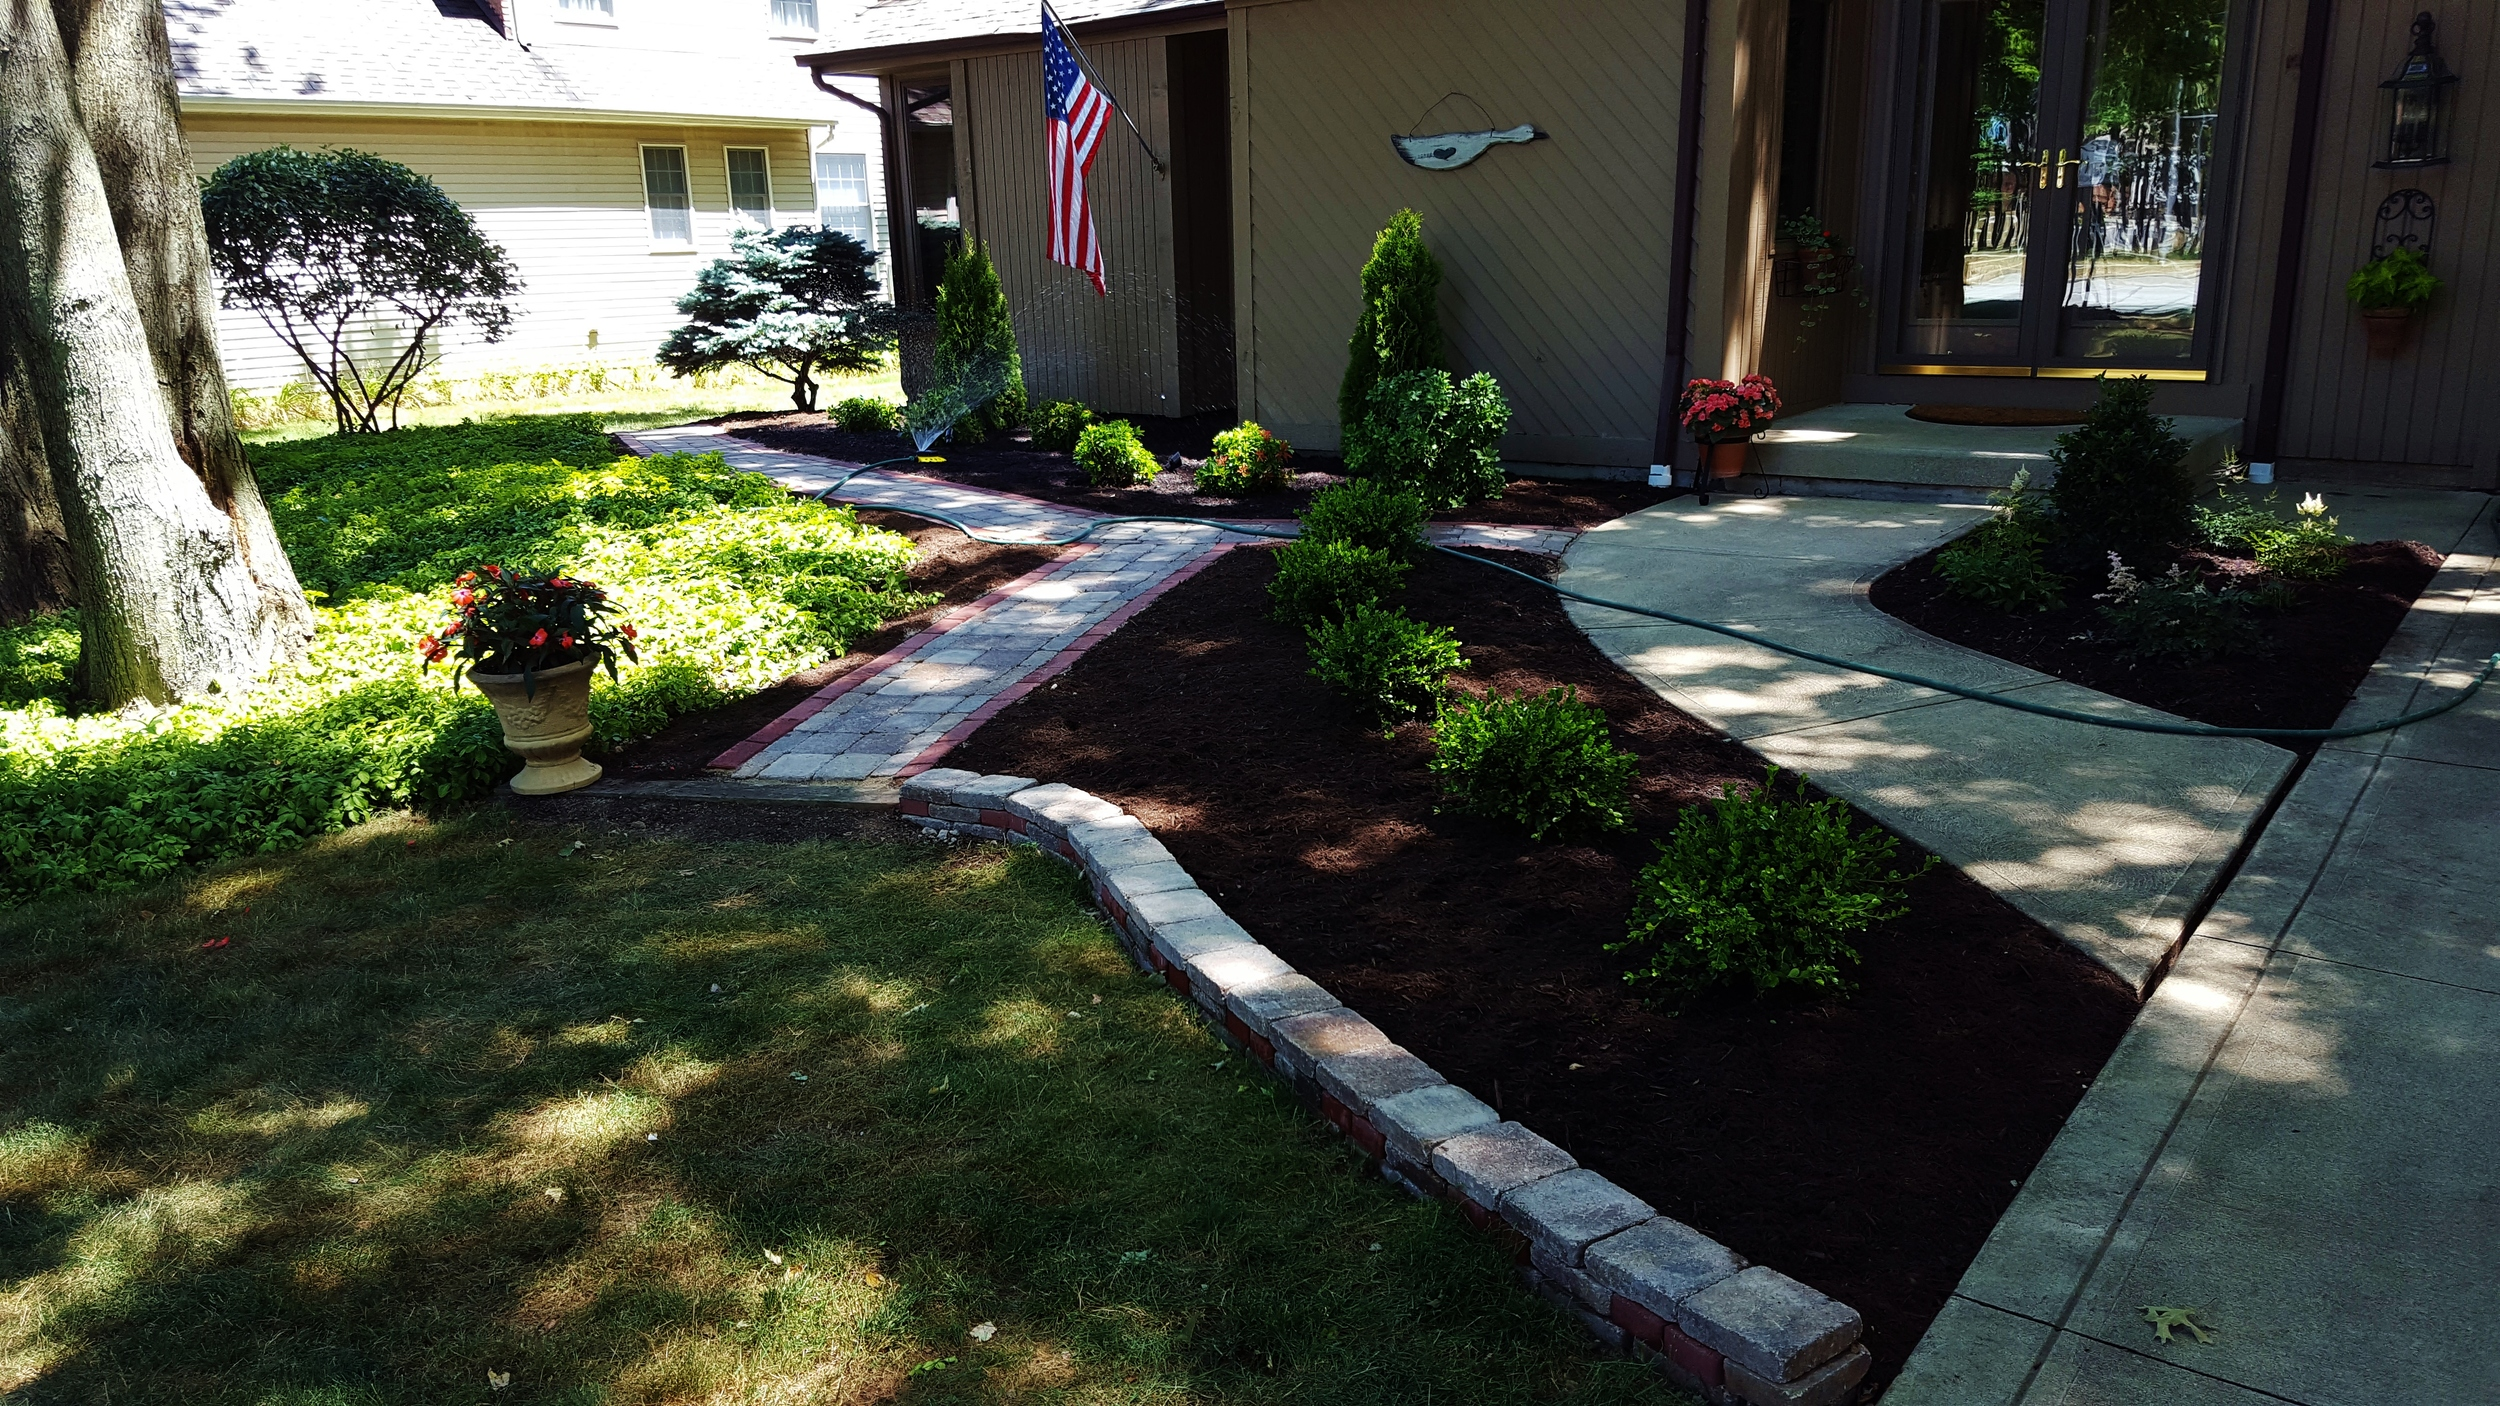 Landscape design and implementation.  Included paved walkway and retaining wall.